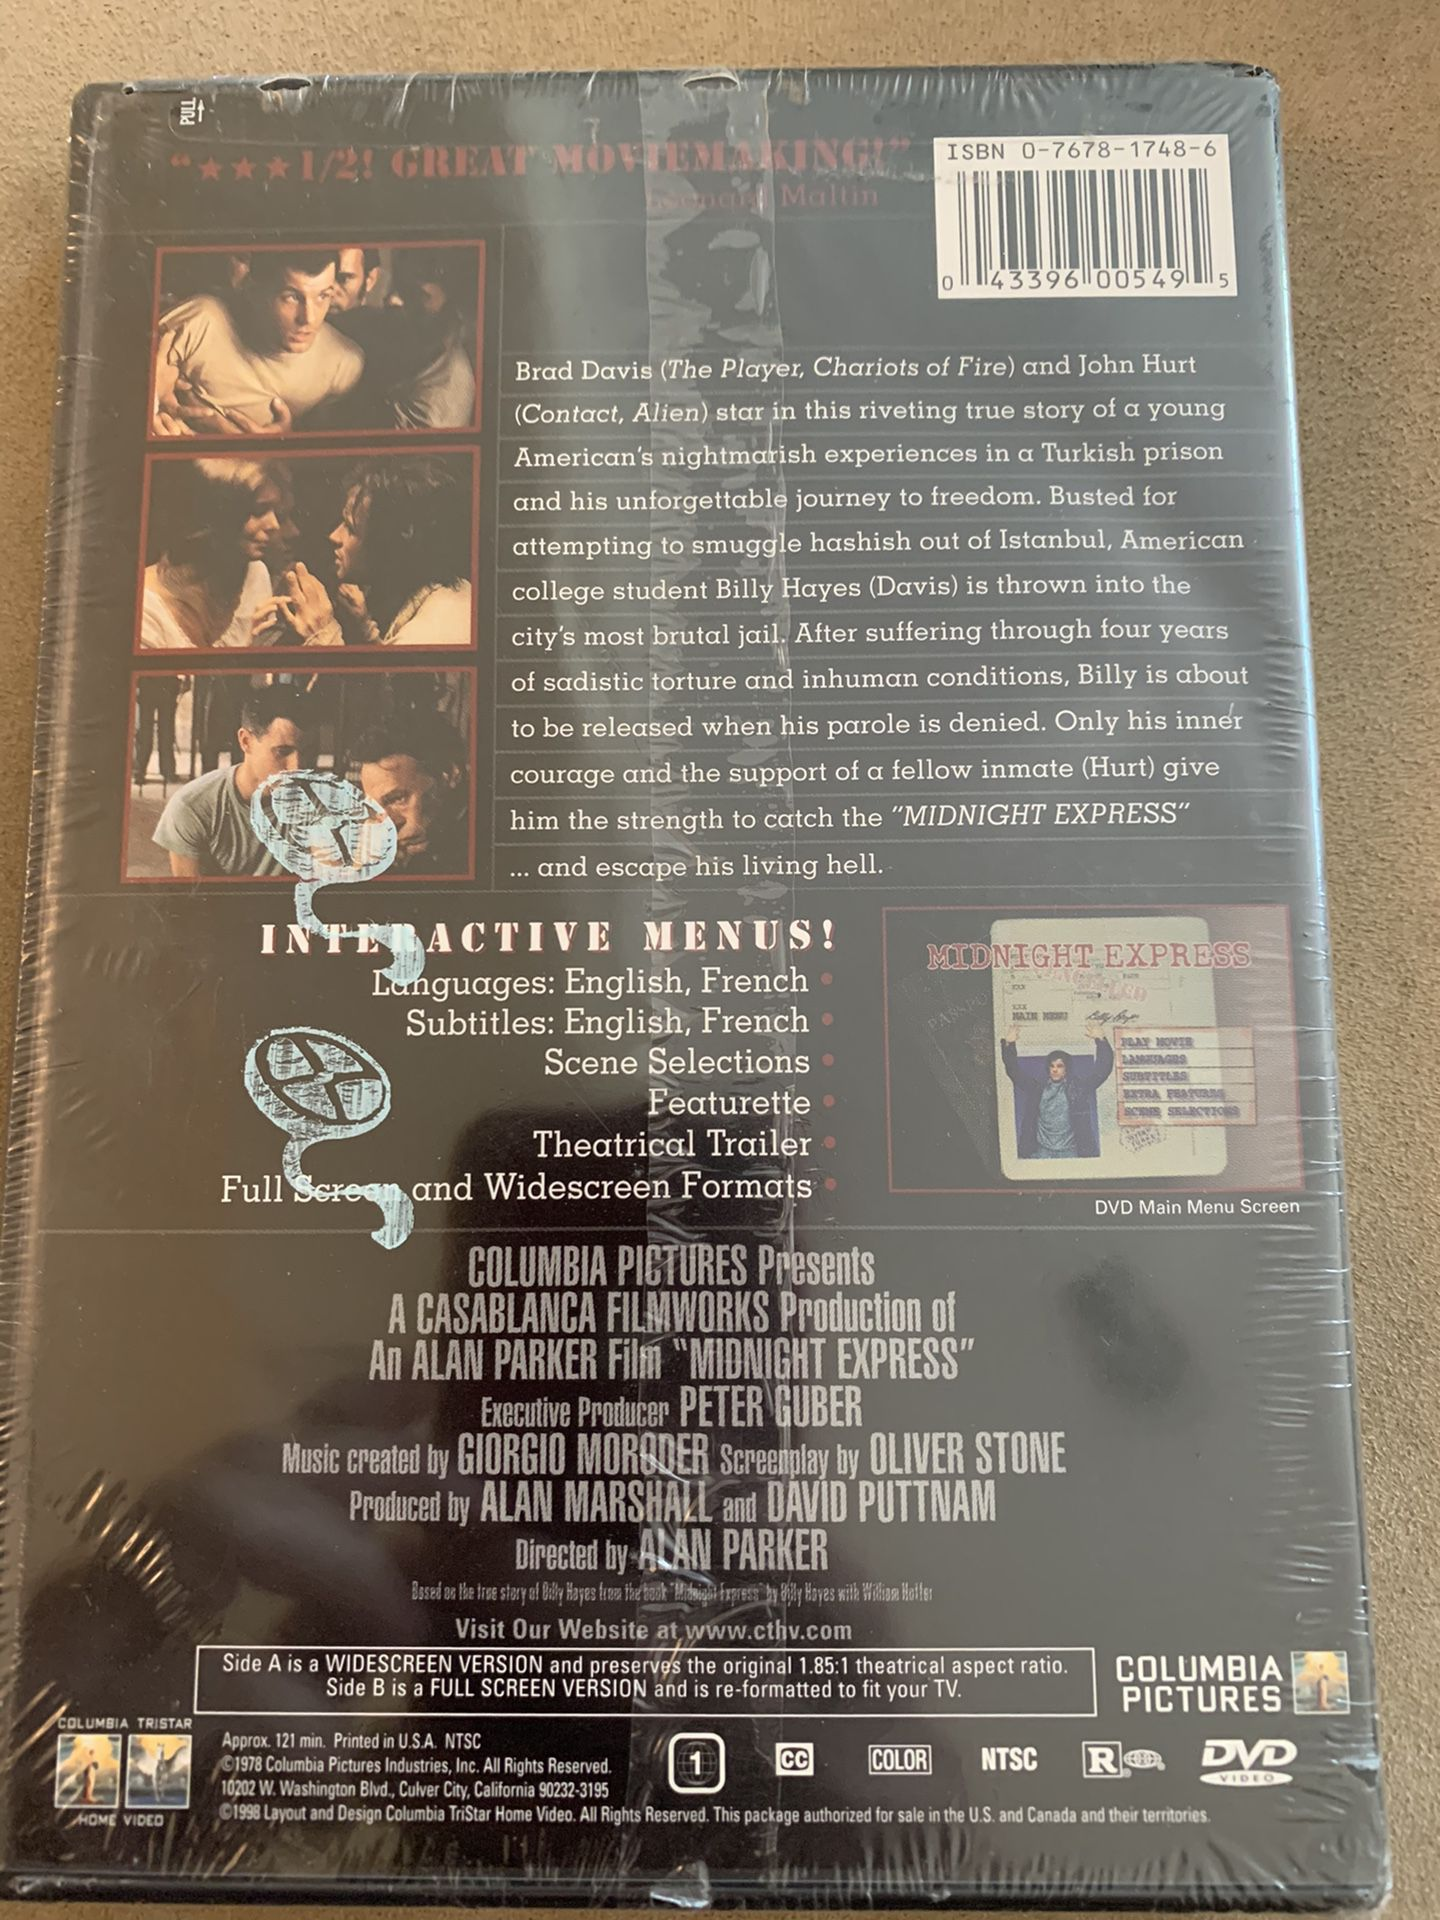 MIDNIGHT EXPRESS 20th Anniversary Edition SEALED DVD